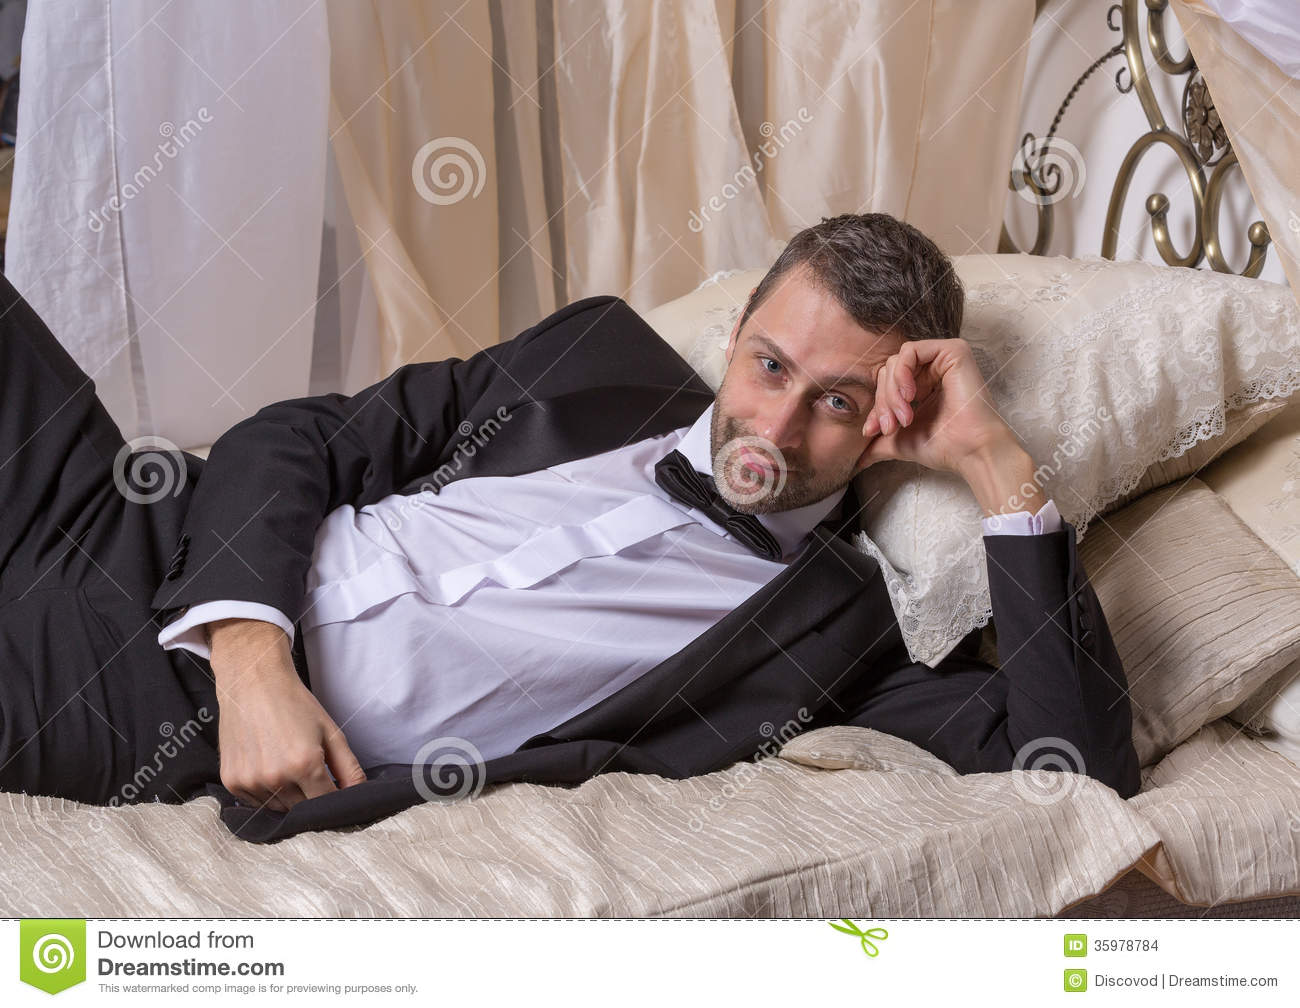 Royalty-Free Stock Photo  sc 1 st  Dreamstime.com & Elegant Playboy Reclining On A Bed Stock Images - Image: 35978784 islam-shia.org